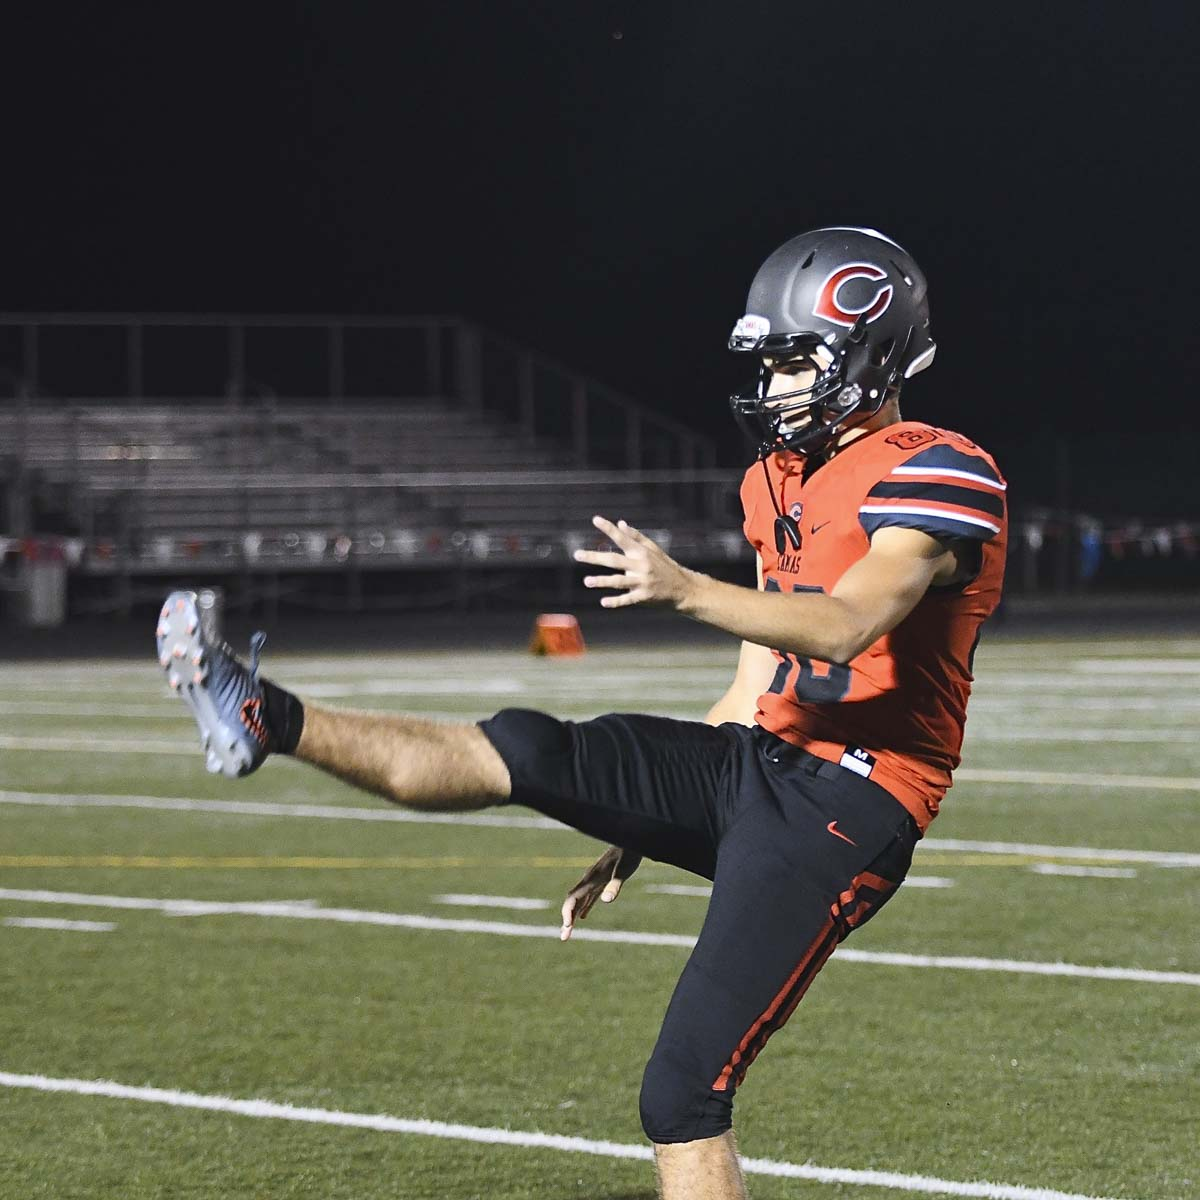 Bryce Leighton will be recognized in front of the student body Friday for his selection to the Under Armor All-American Game. The game, which brings some of the best high school football players in the nation together, will be played in January in Orlando, Fla. Photo by Kris Cavin